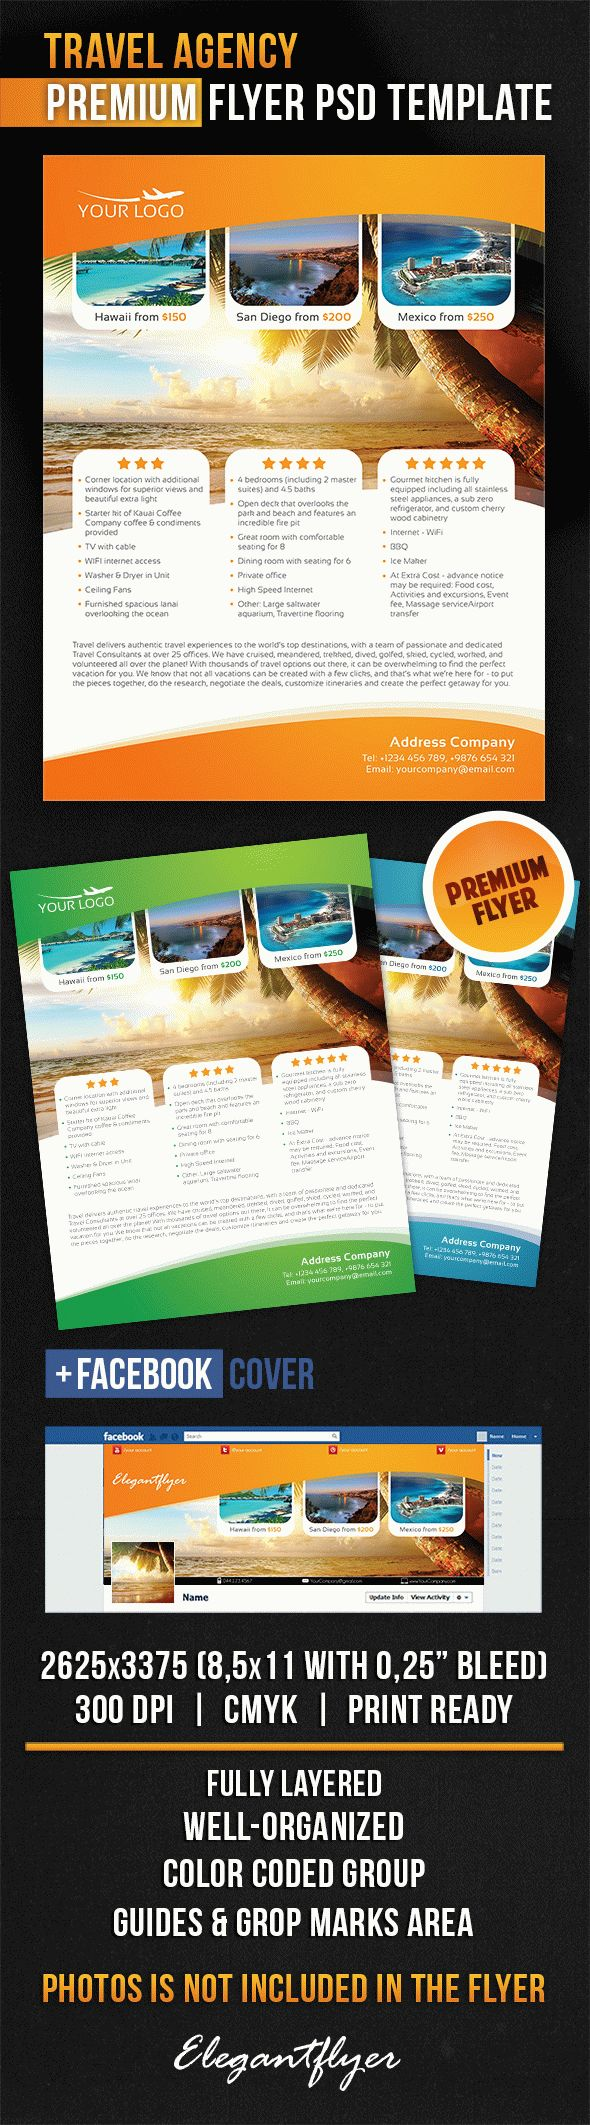 Travel Agency – Flyer PSD Template + Facebook Cover